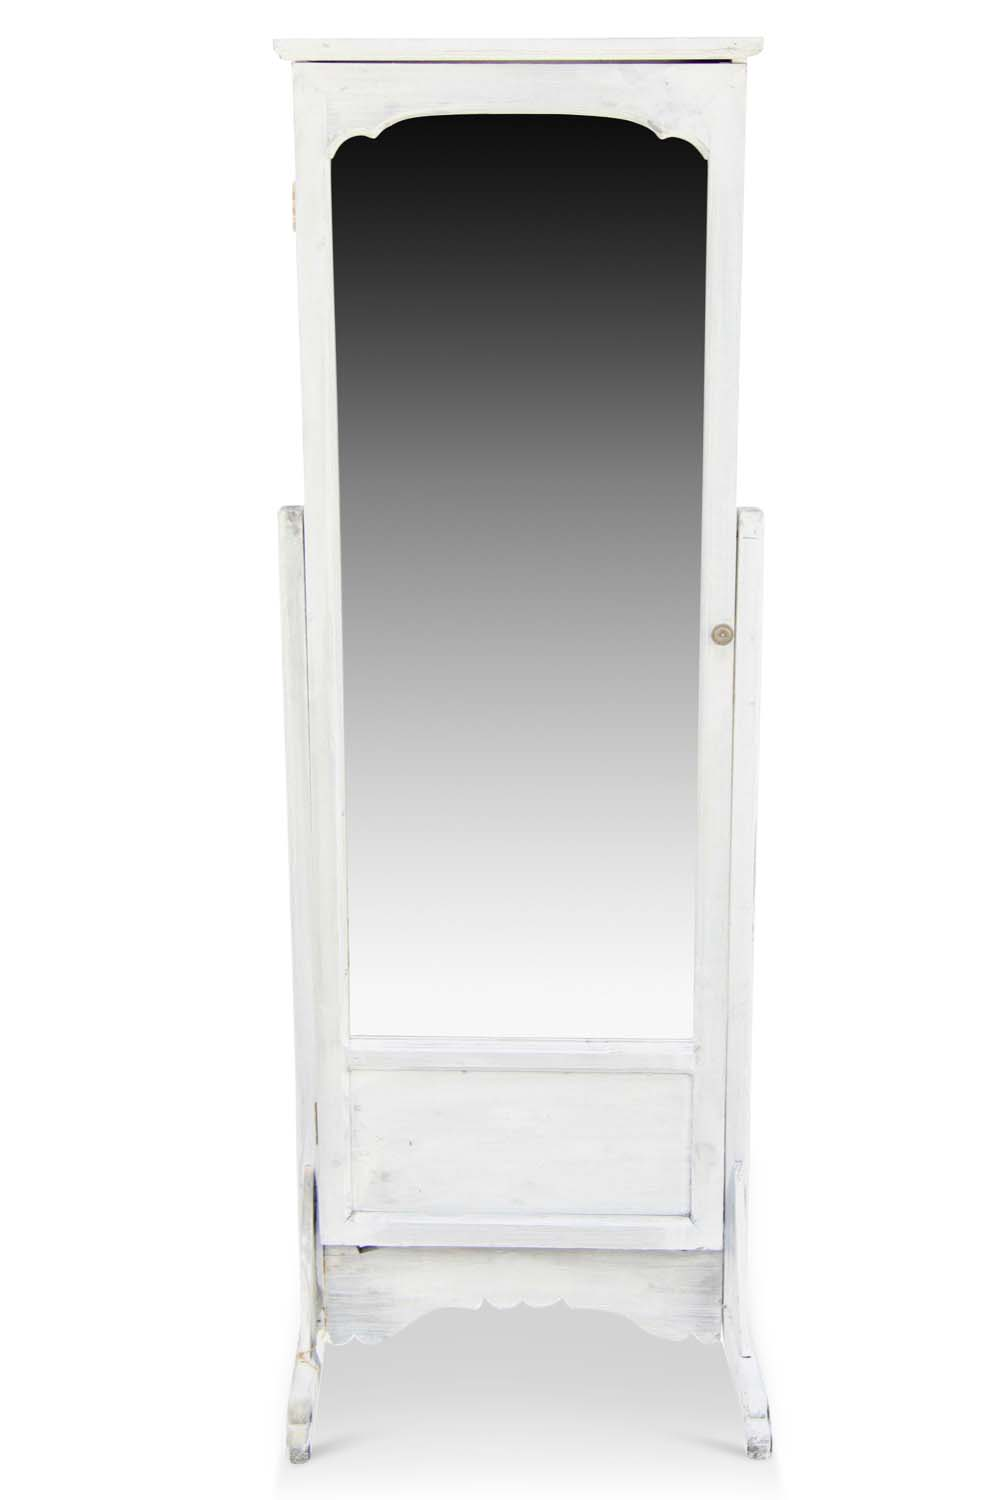 miroir ancien rectangulaire vertical sur pied bois blanc ceruse. Black Bedroom Furniture Sets. Home Design Ideas